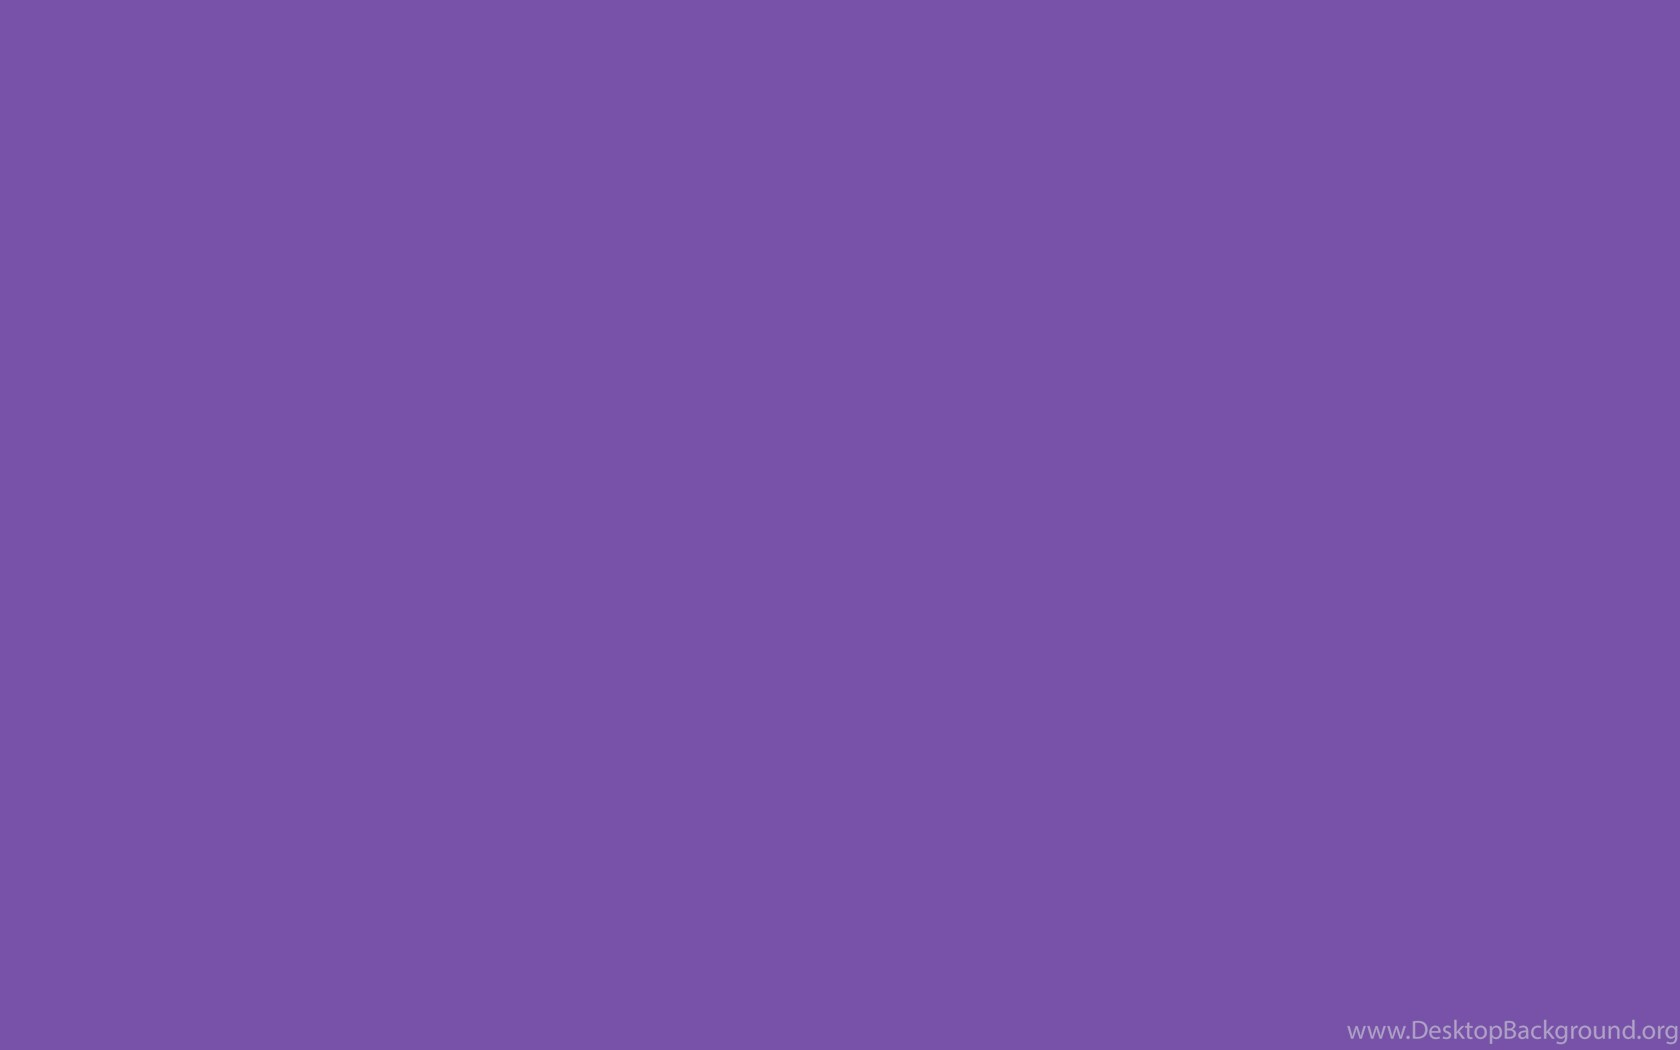 purple color backgrounds wallpapers cave desktop background